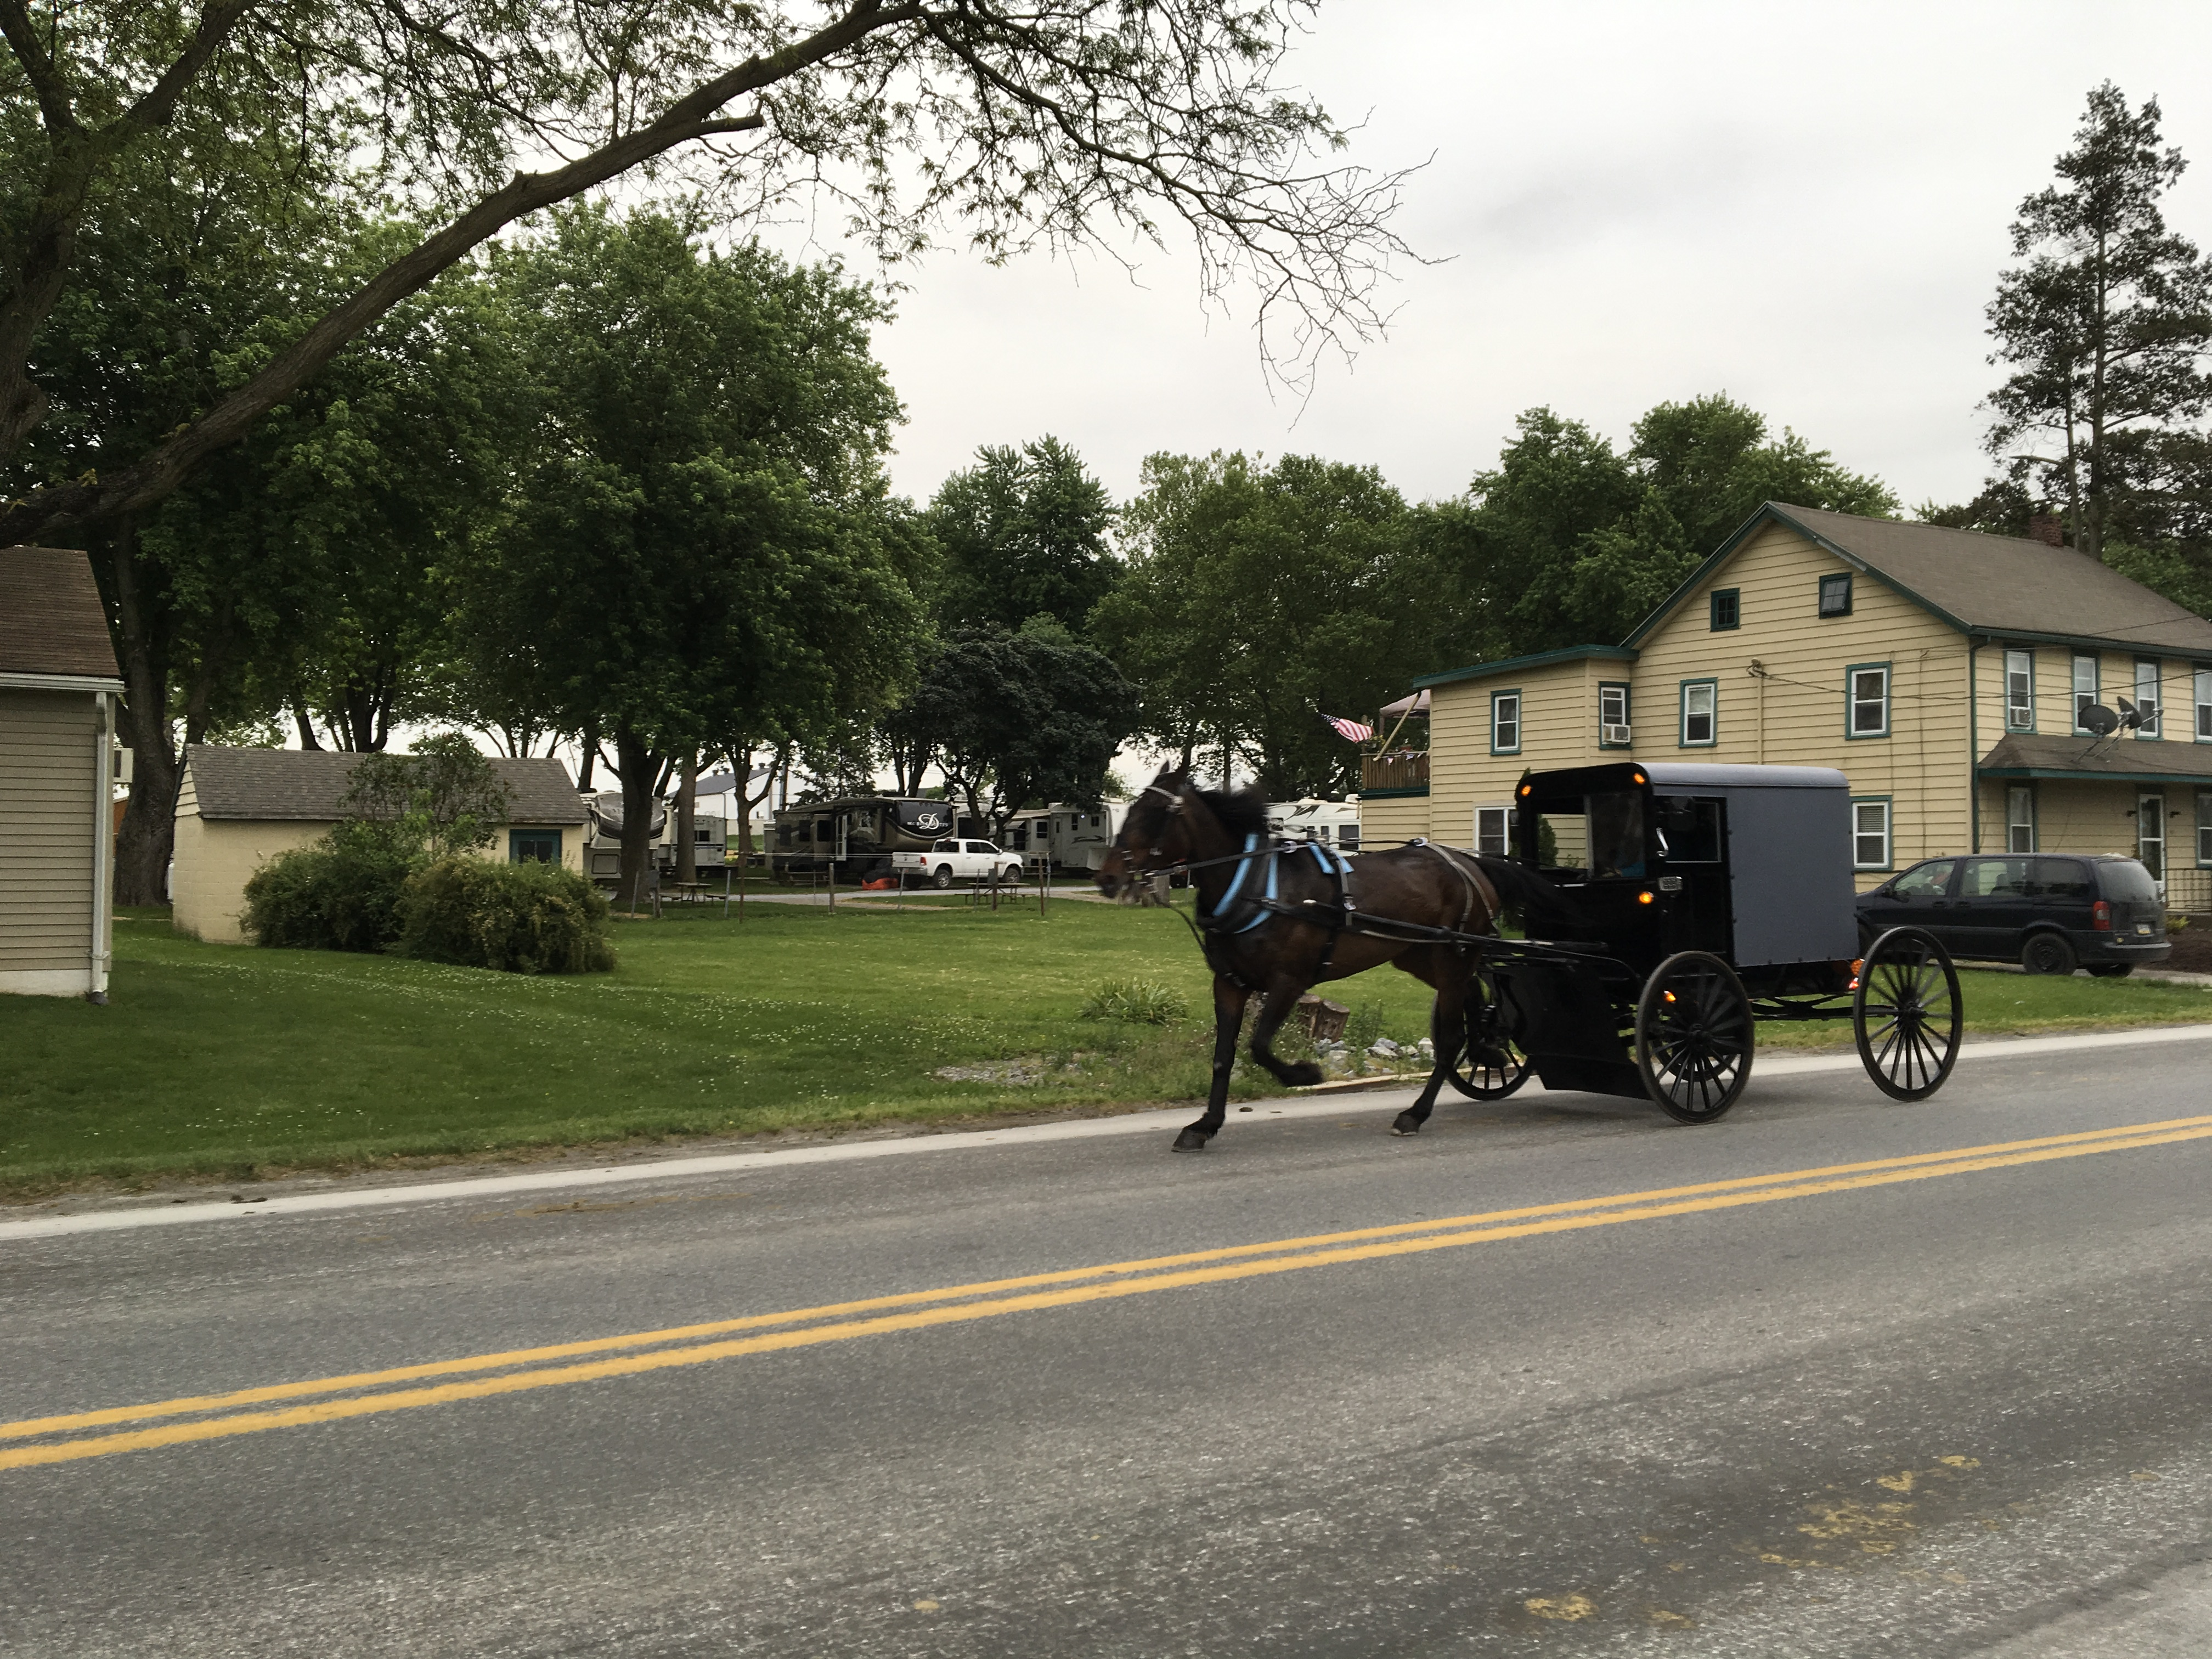 Flory's Cottages & Camping - buggy ride